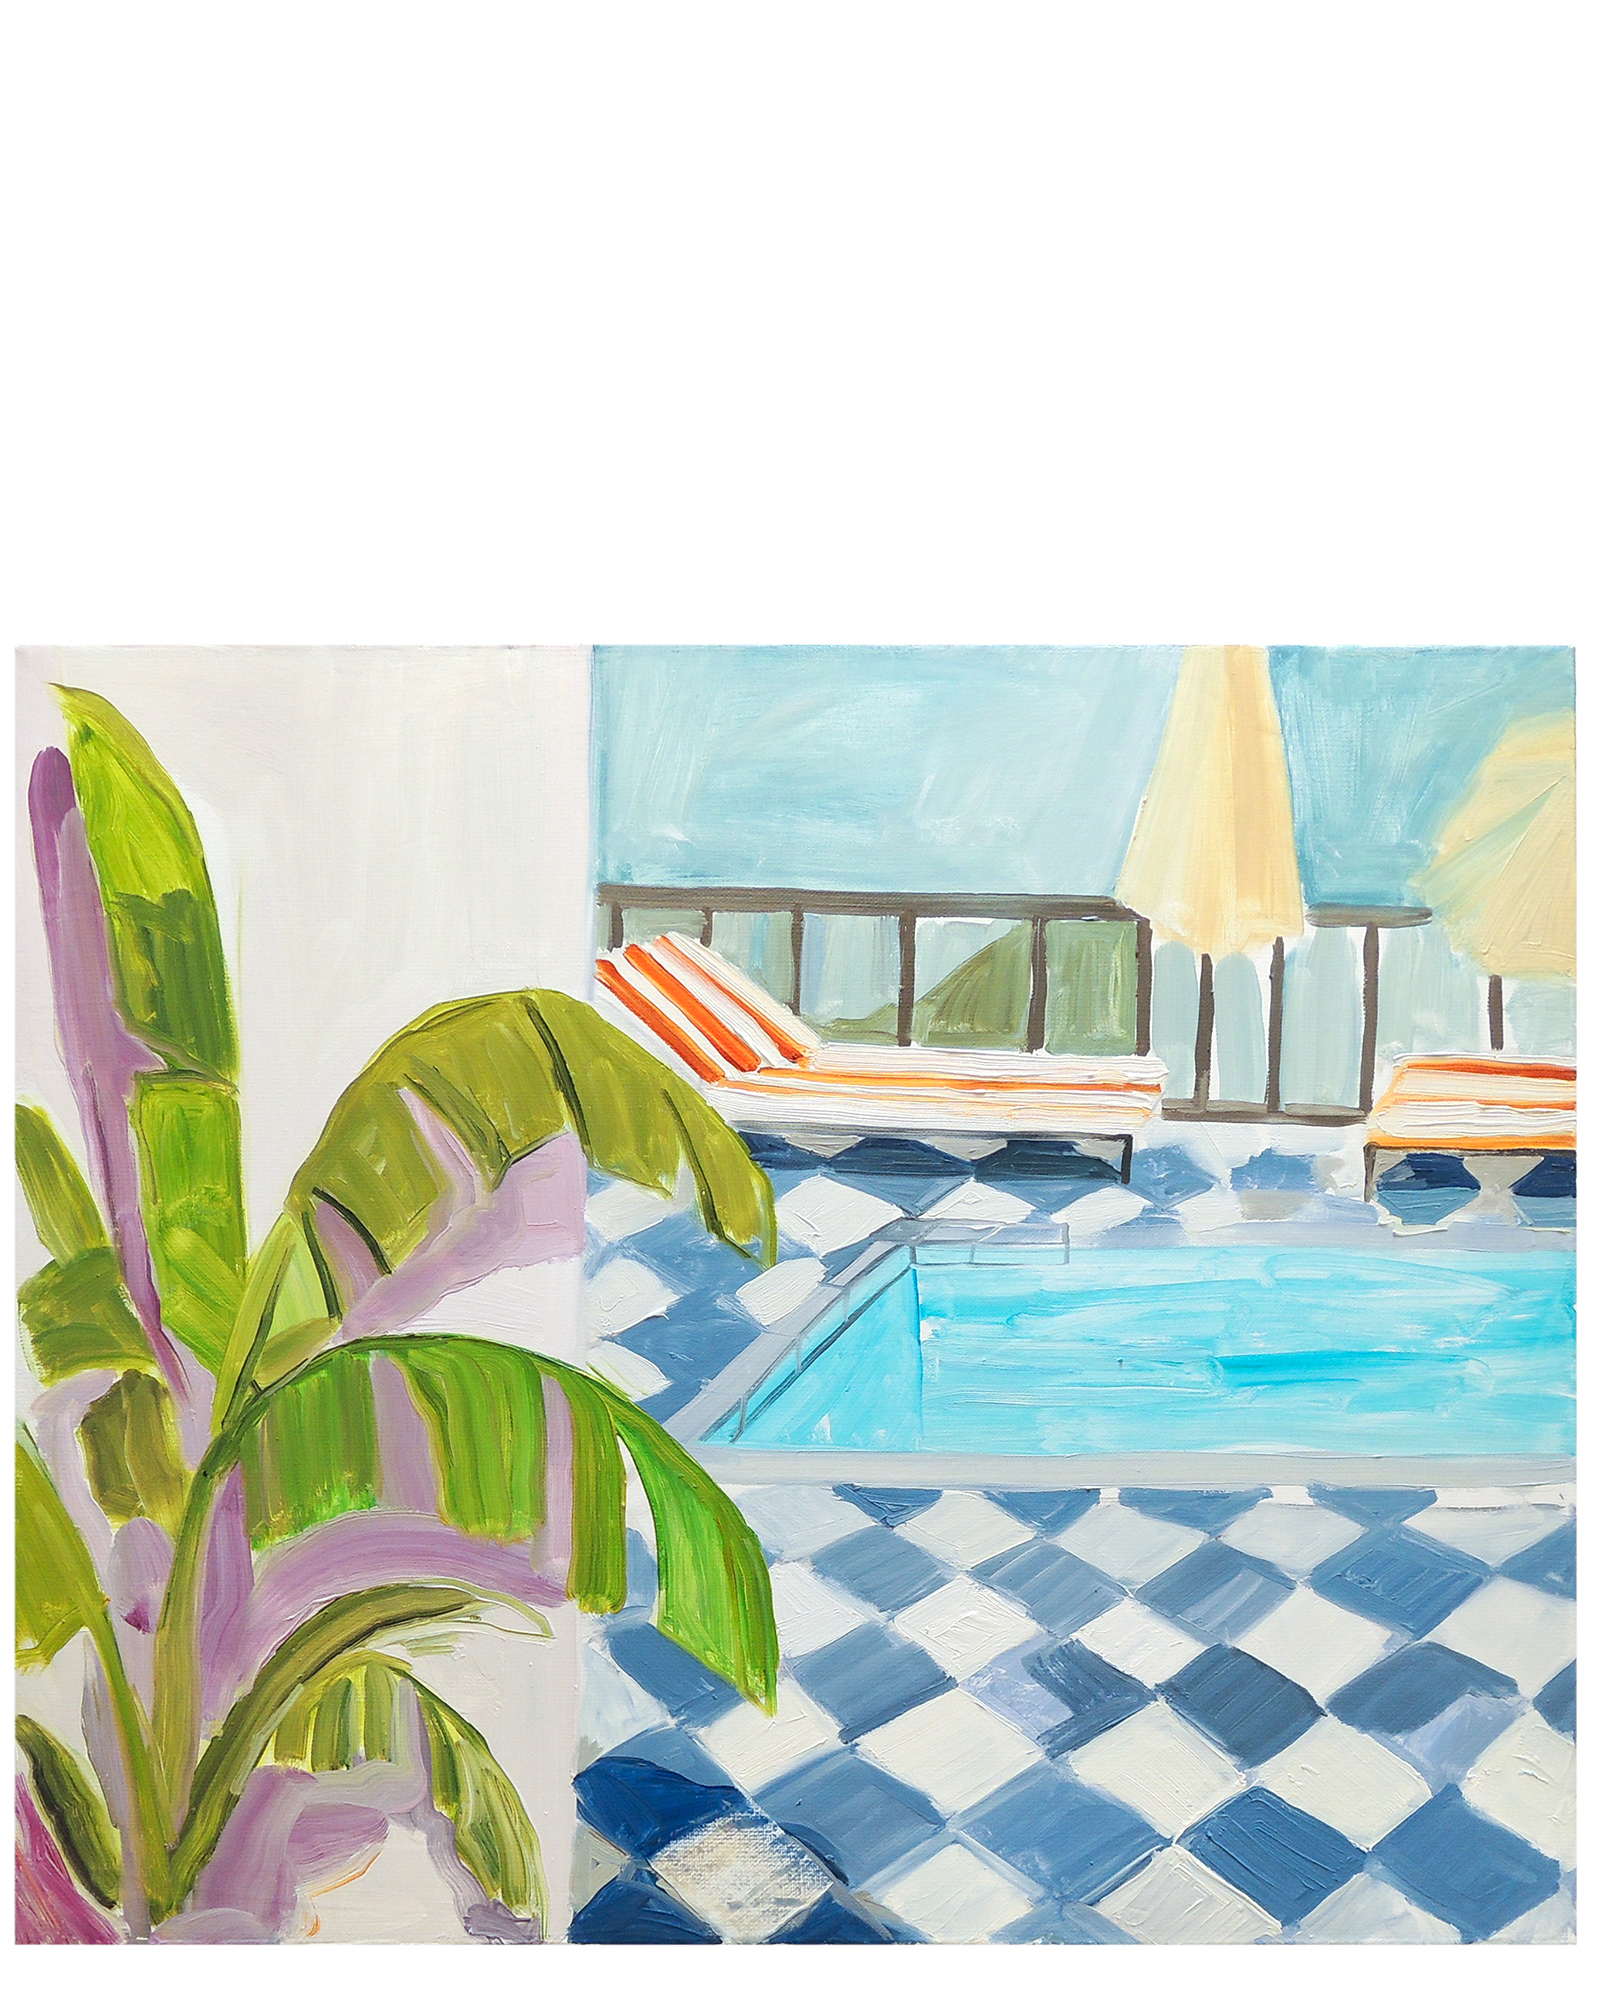 Pool With a View painting by Claire Elliot.